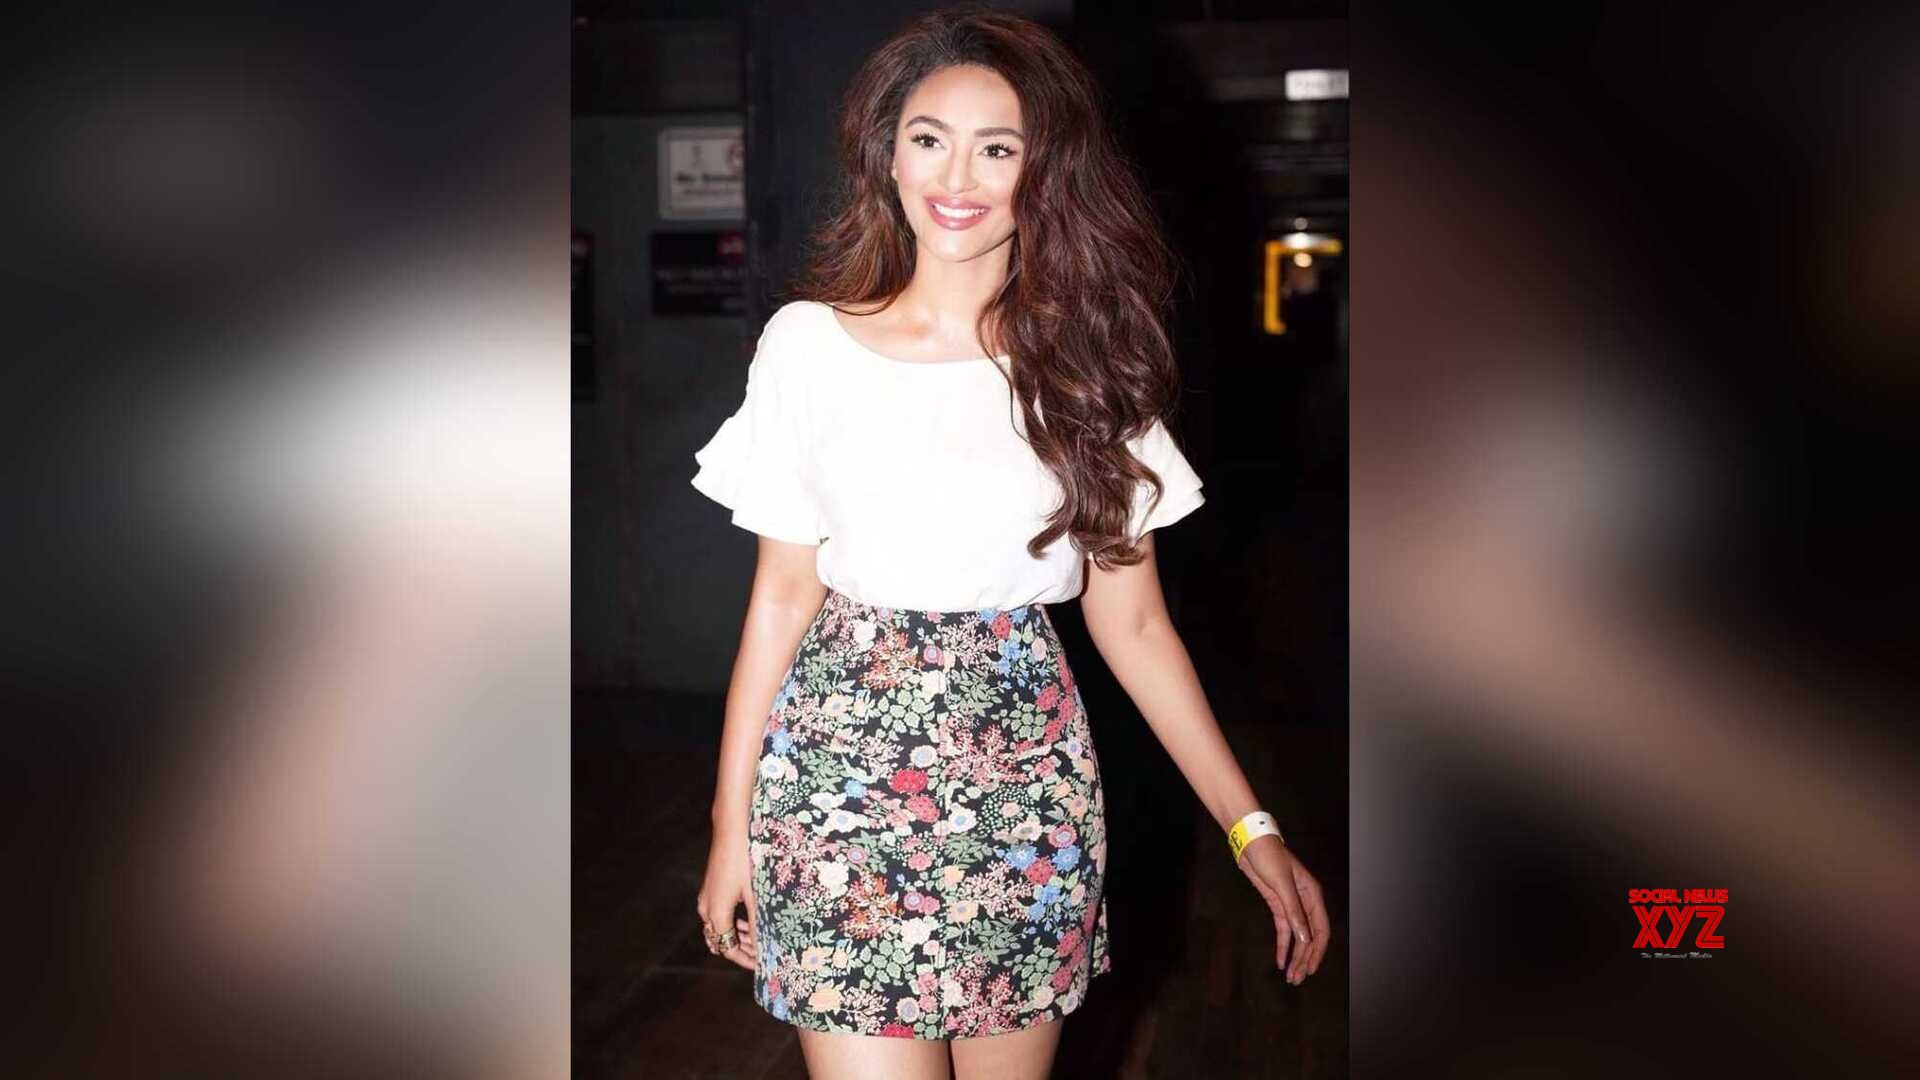 Seerat Kapoor reveals her new look for her upcoming Bollywood film, Looks mesmerizing